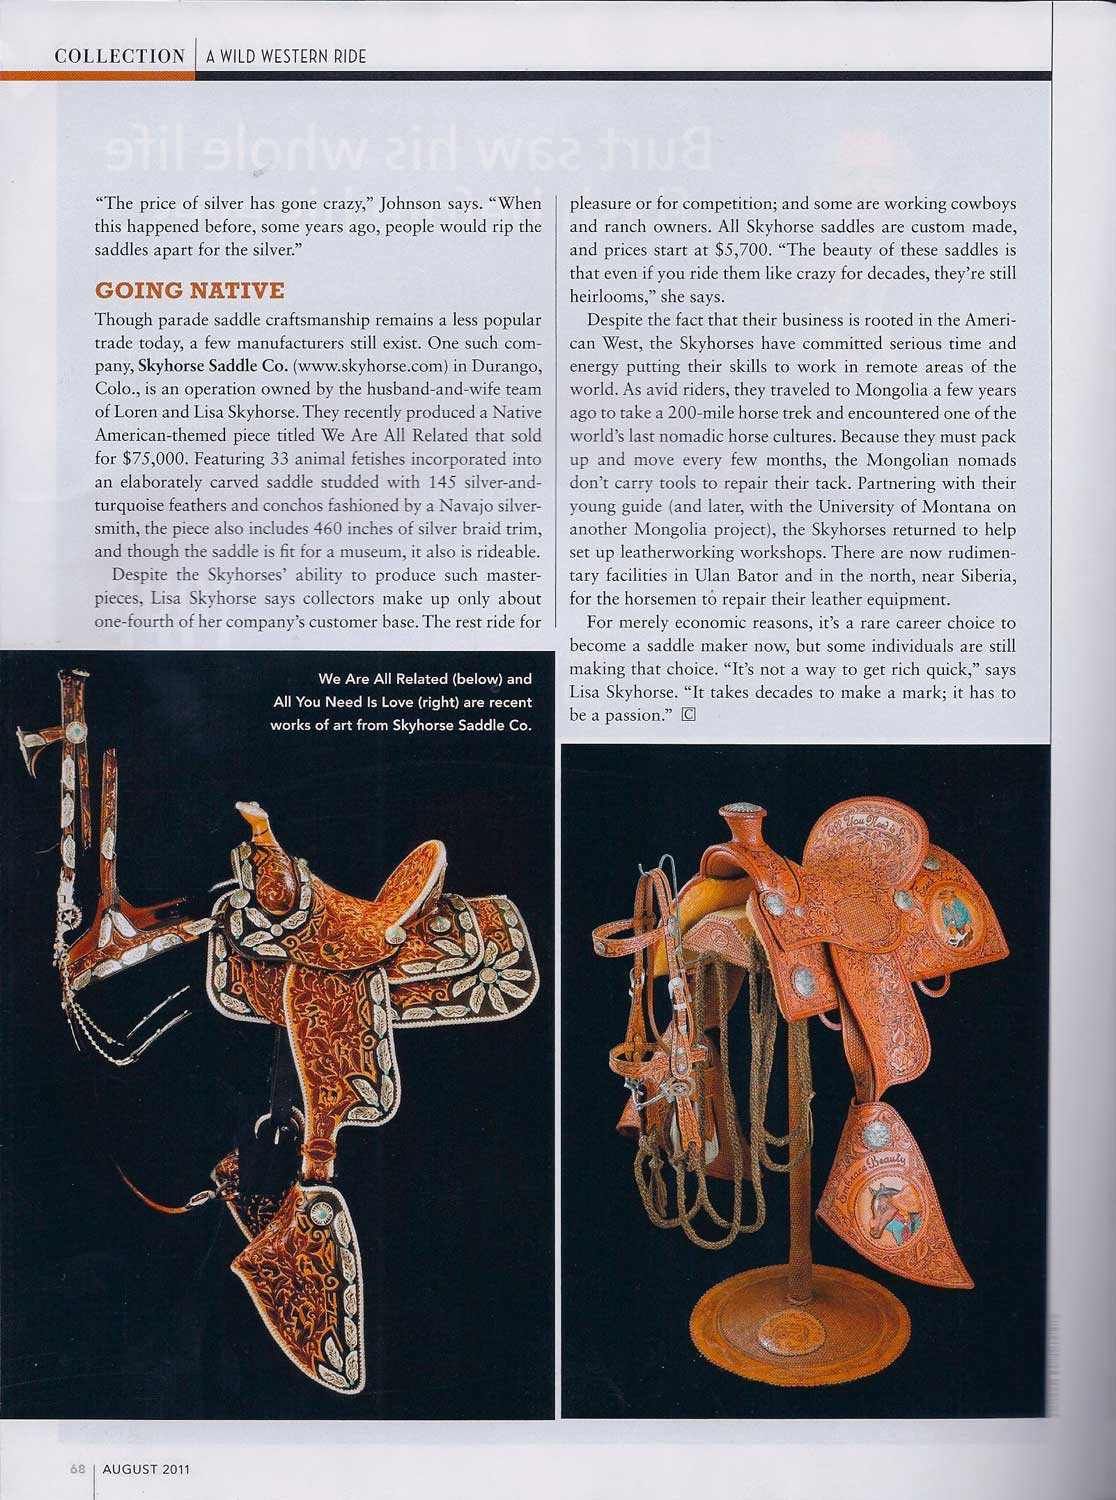 Article-Collection-magazine.jpg